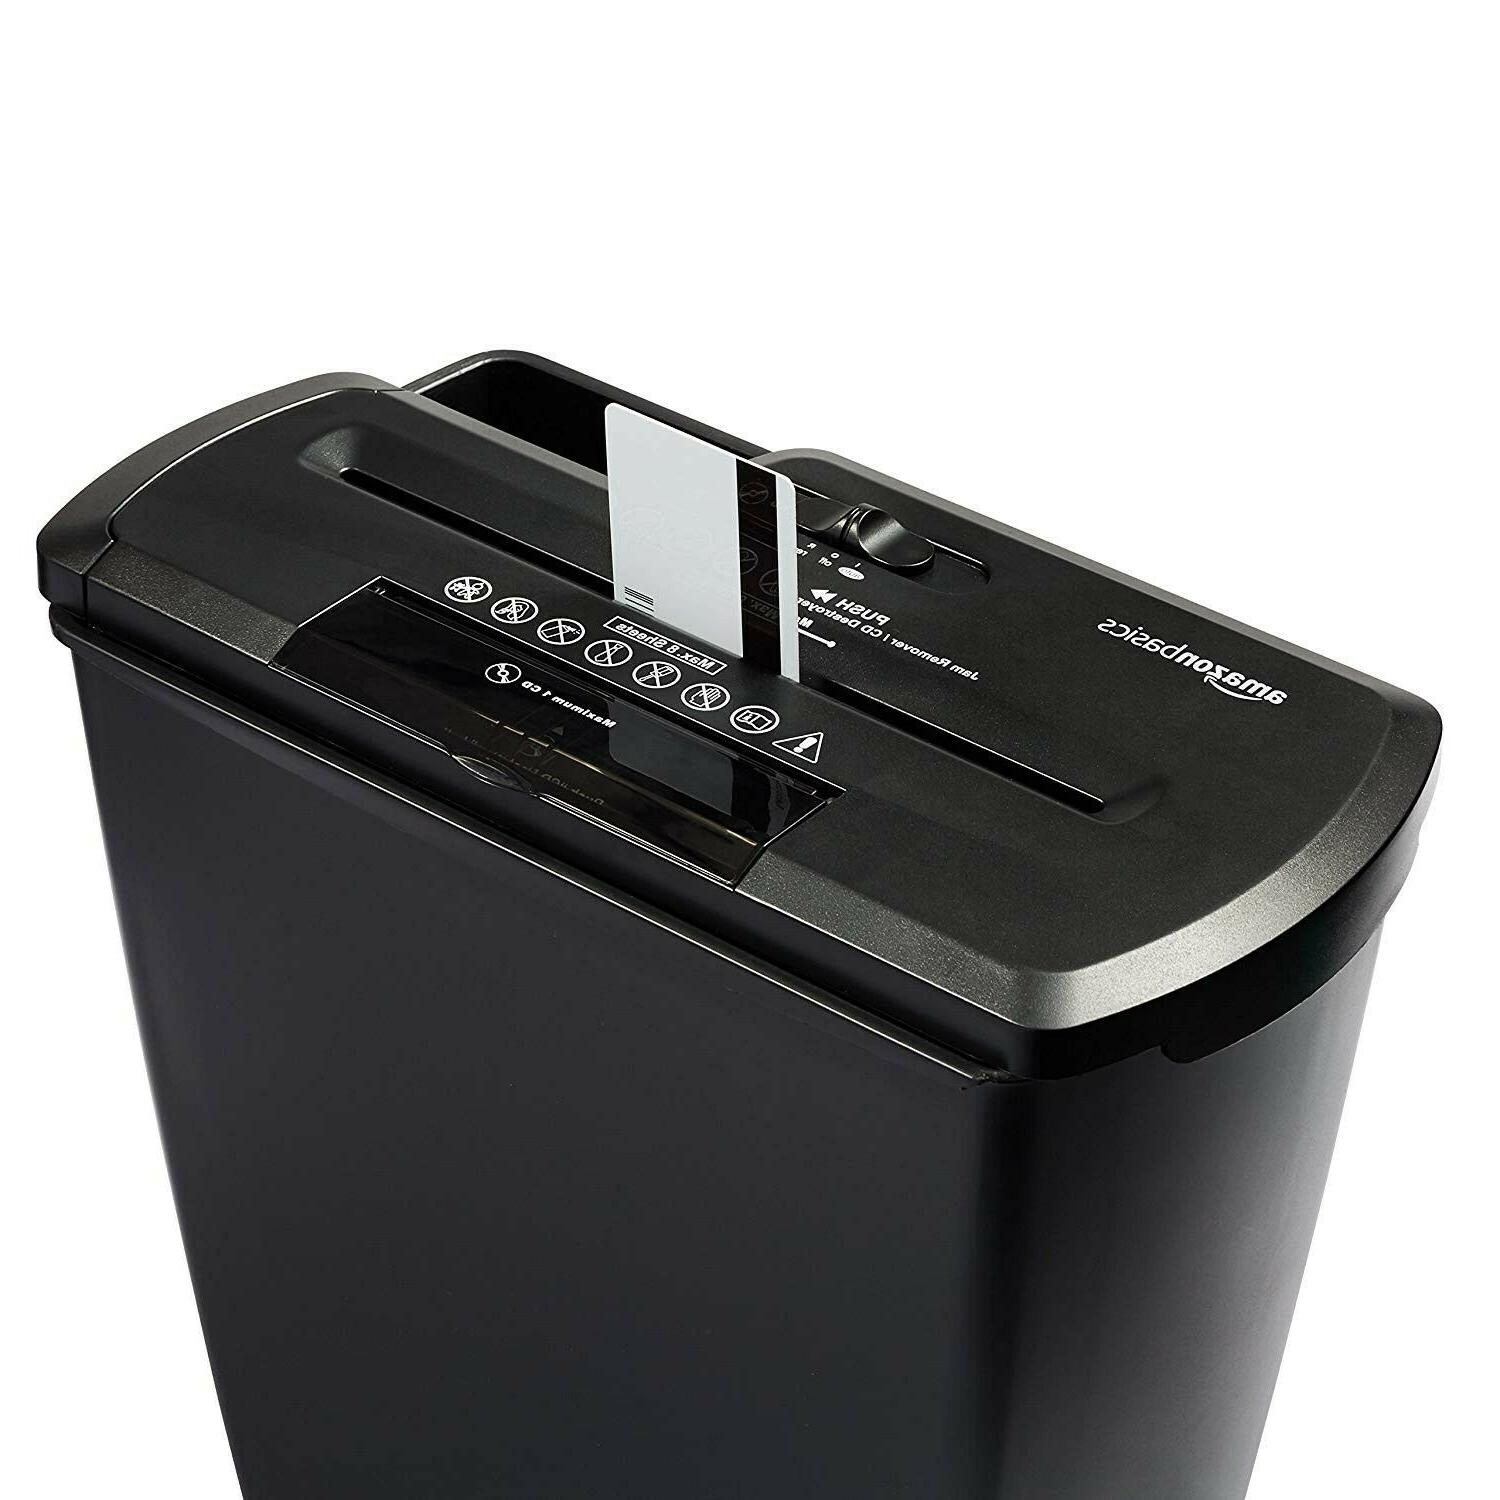 AmazonBasics 8-Sheet CD Card Home Shredder.